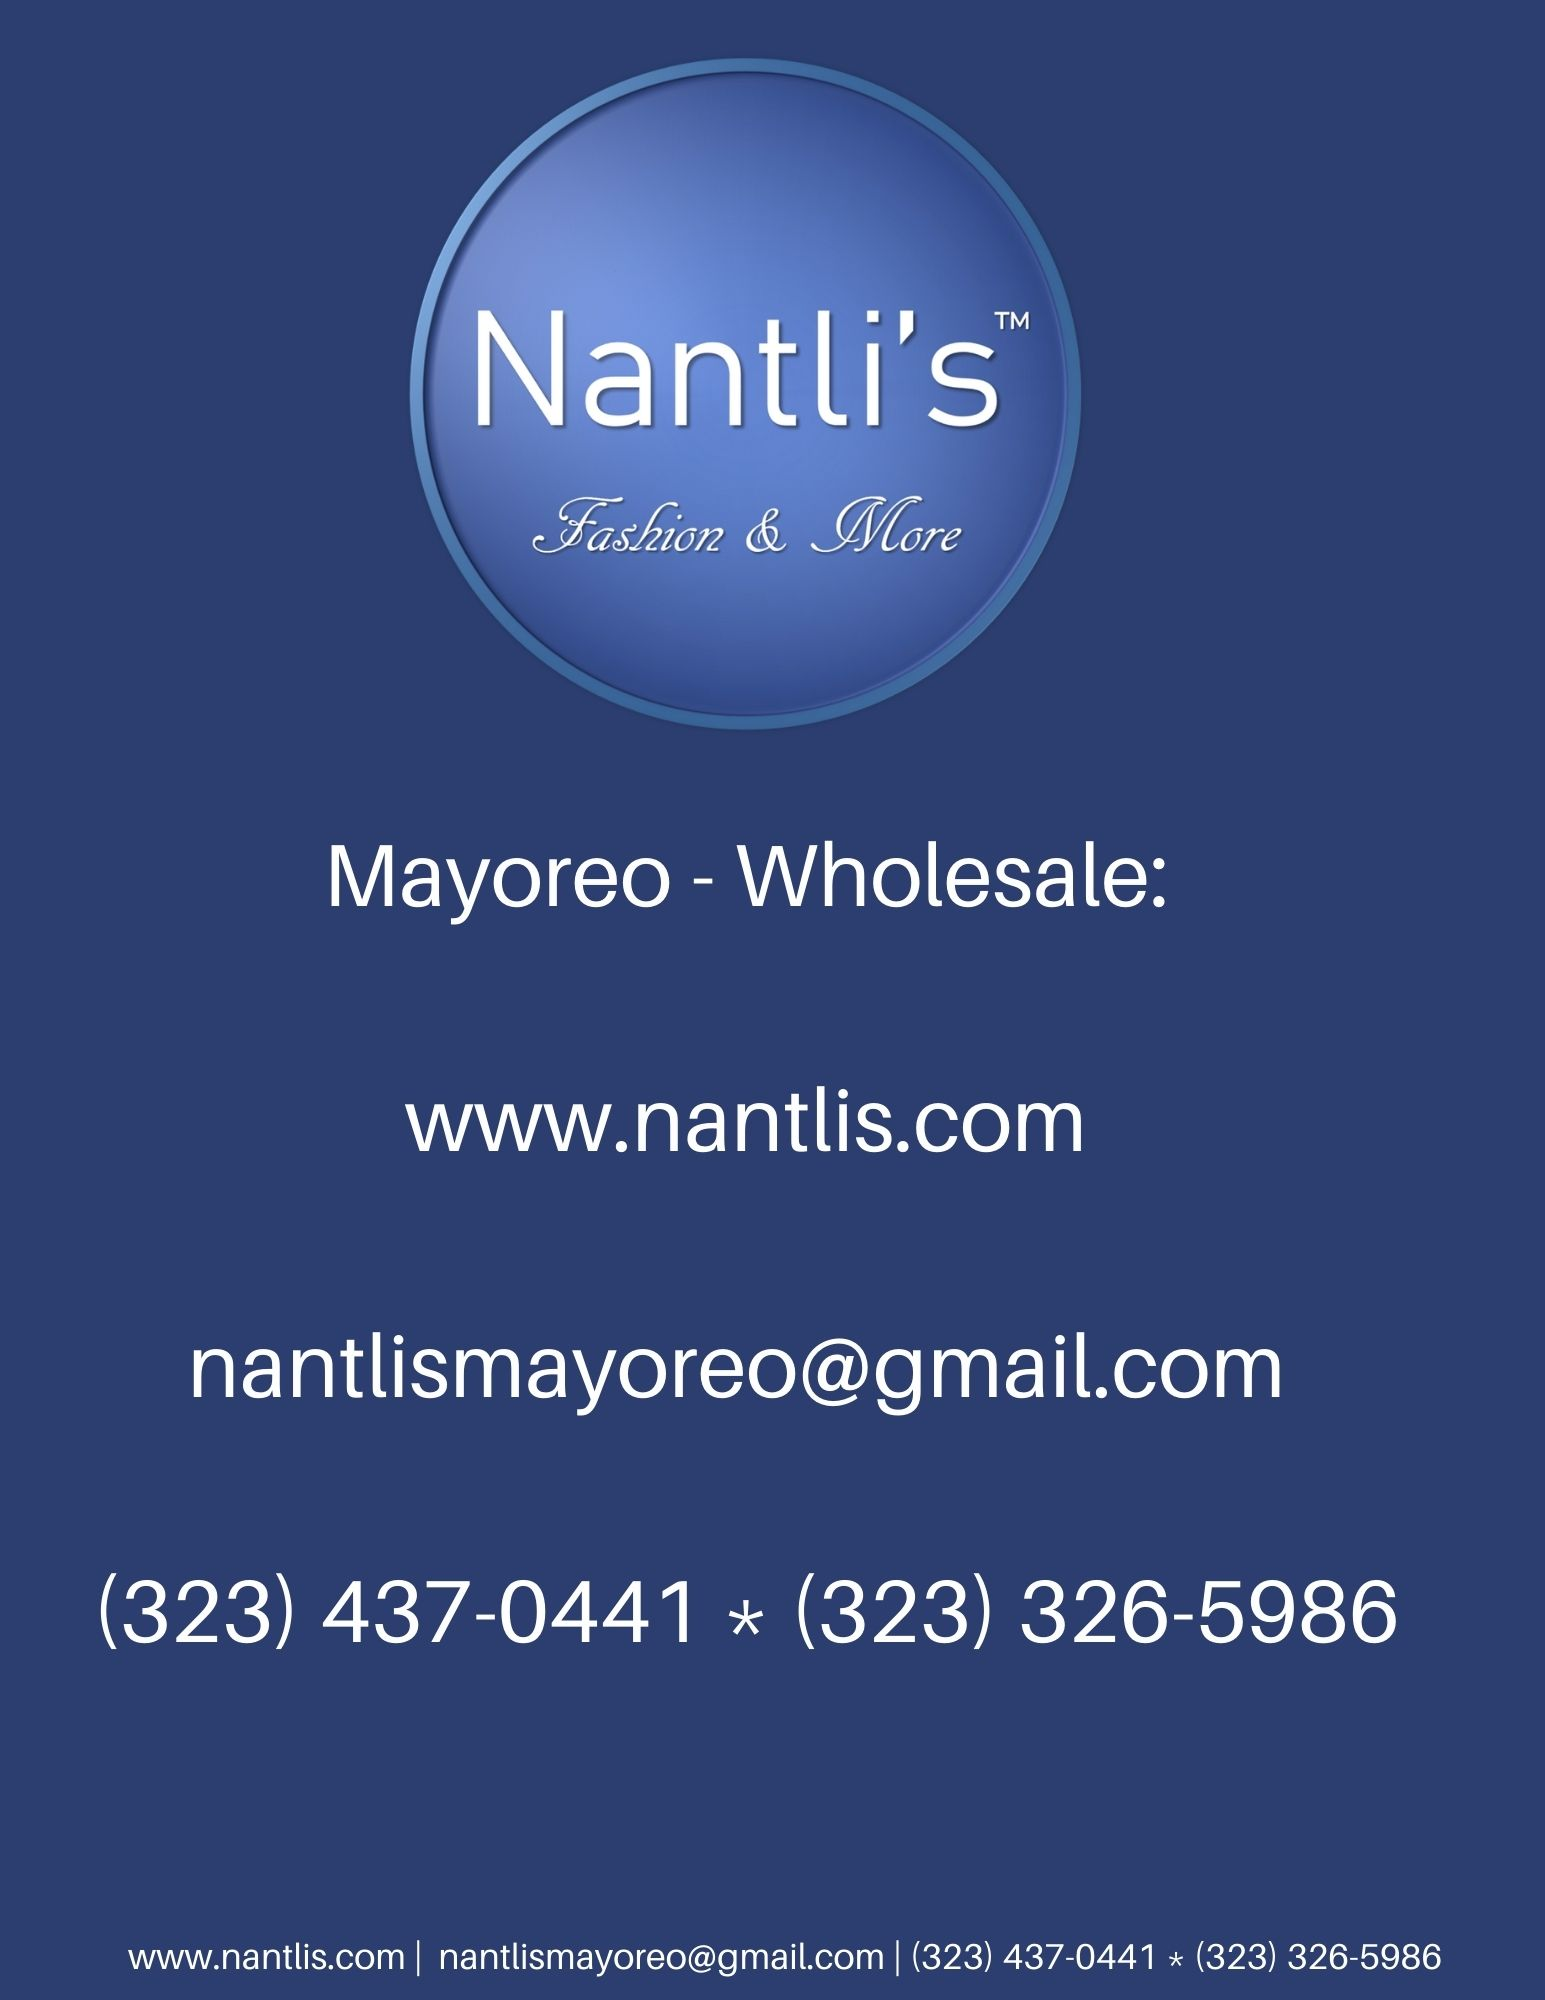 Nantlis Vol AN22 Botas Mujer mayoreo Catalogo Wholesale boots for women page 16